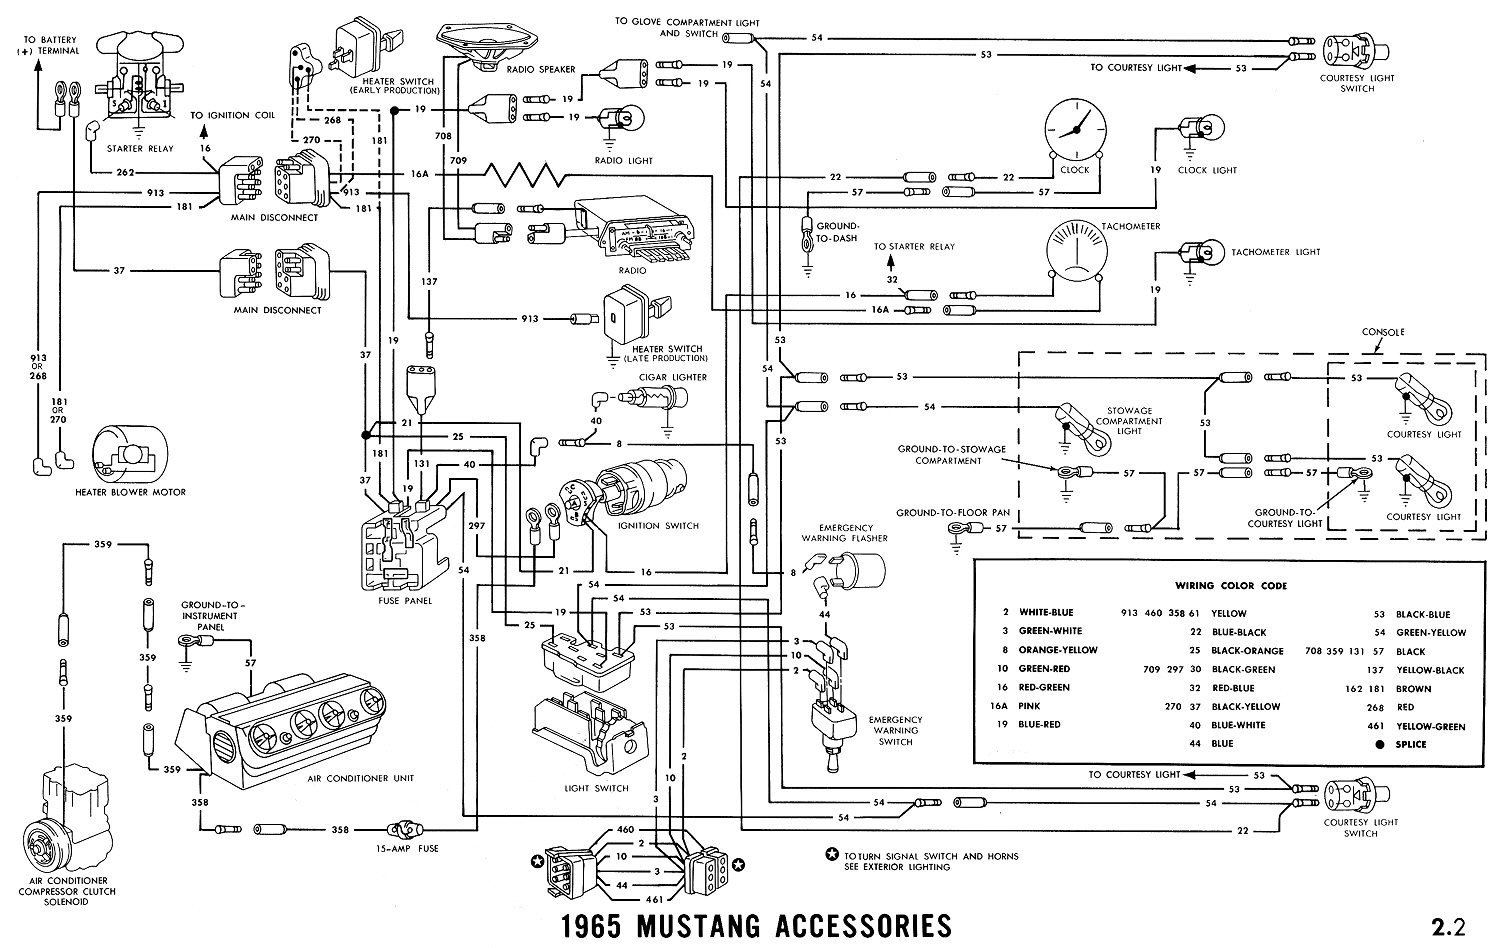 1965i 1965 mustang wiring diagrams average joe restoration 68 mustang wiring harness at reclaimingppi.co